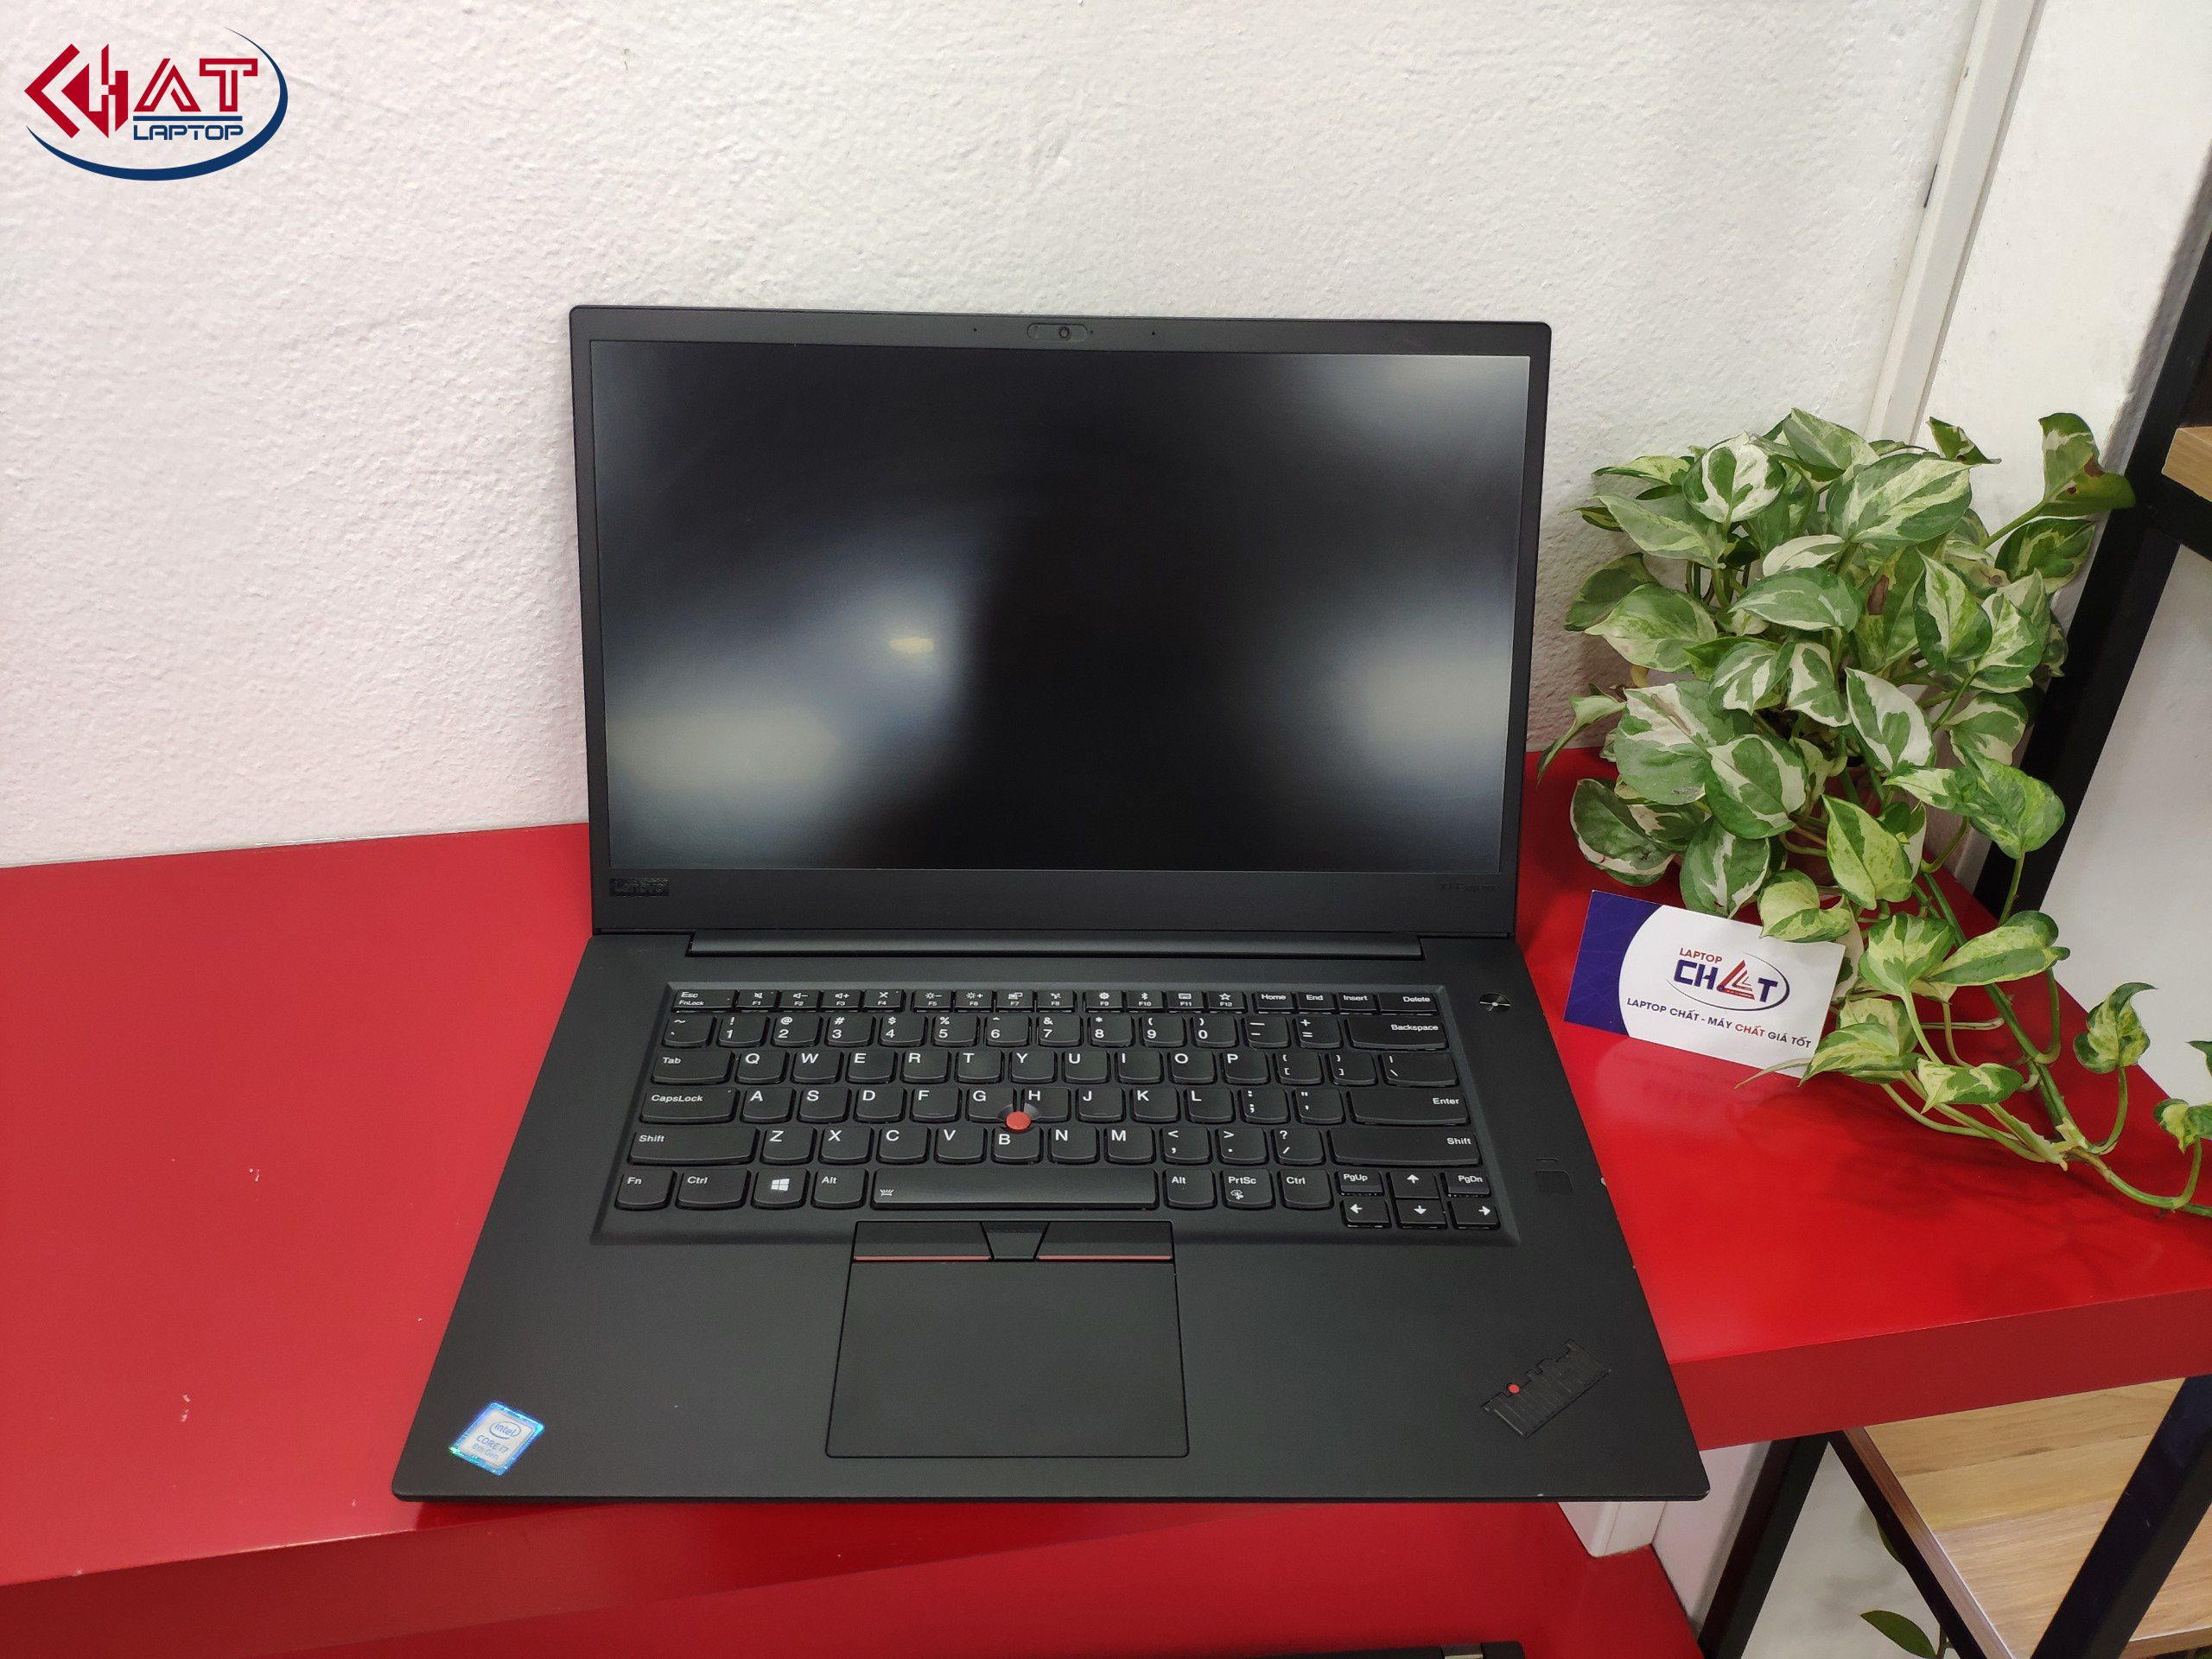 ThinkPad X1 Extreme Gen 1